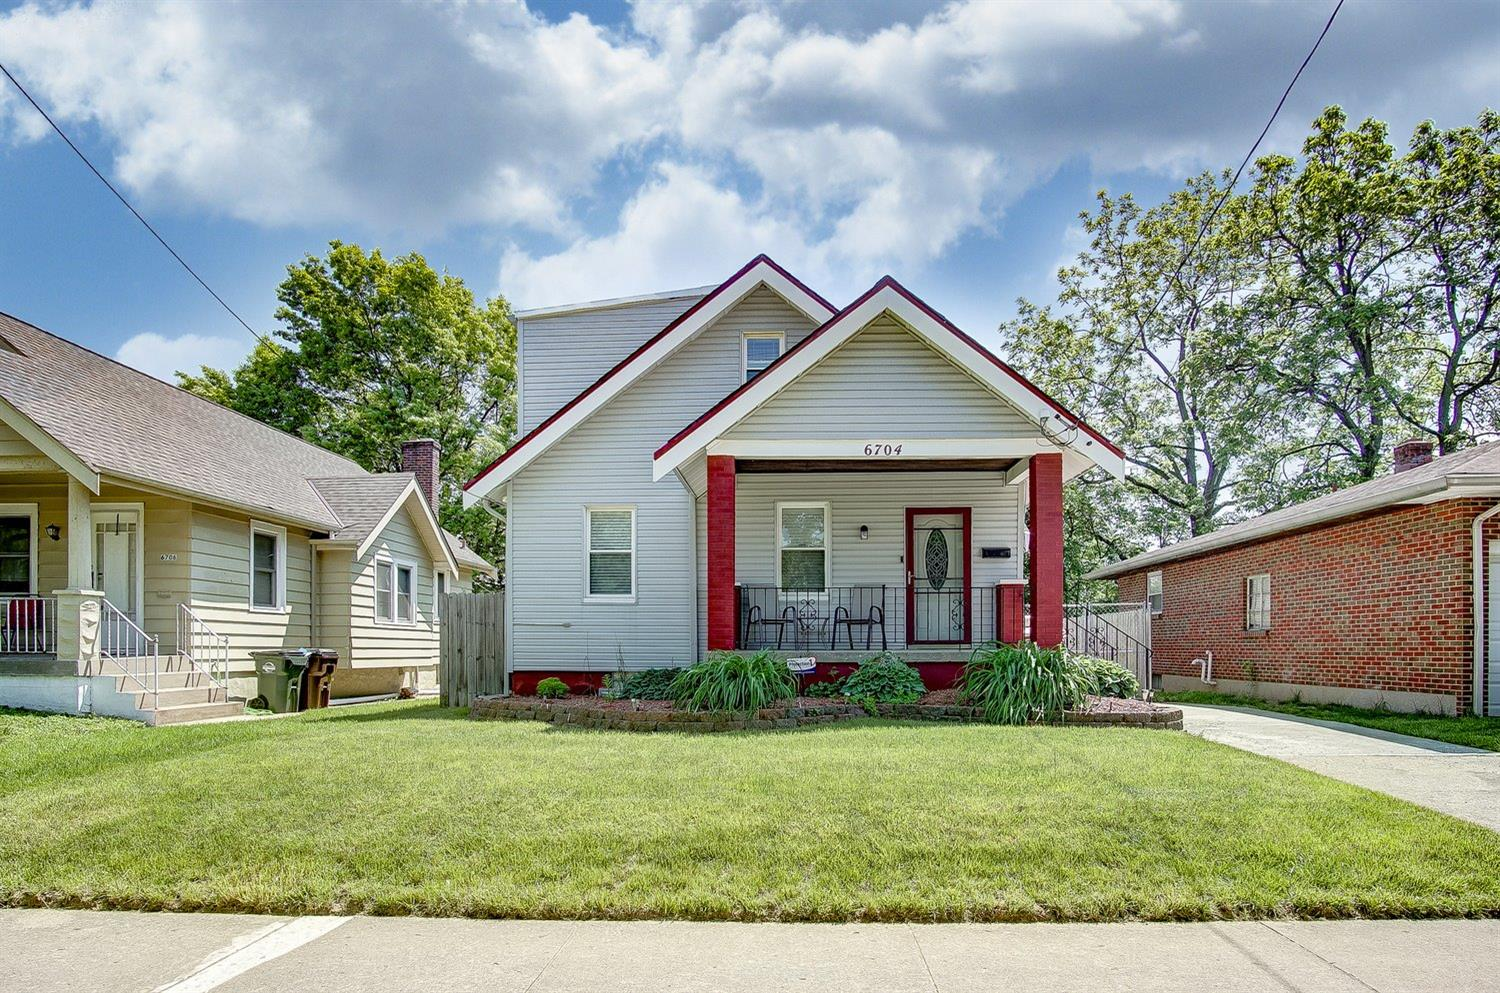 Photo 1 for 6704 Simpson Ave North College Hill, OH 45239